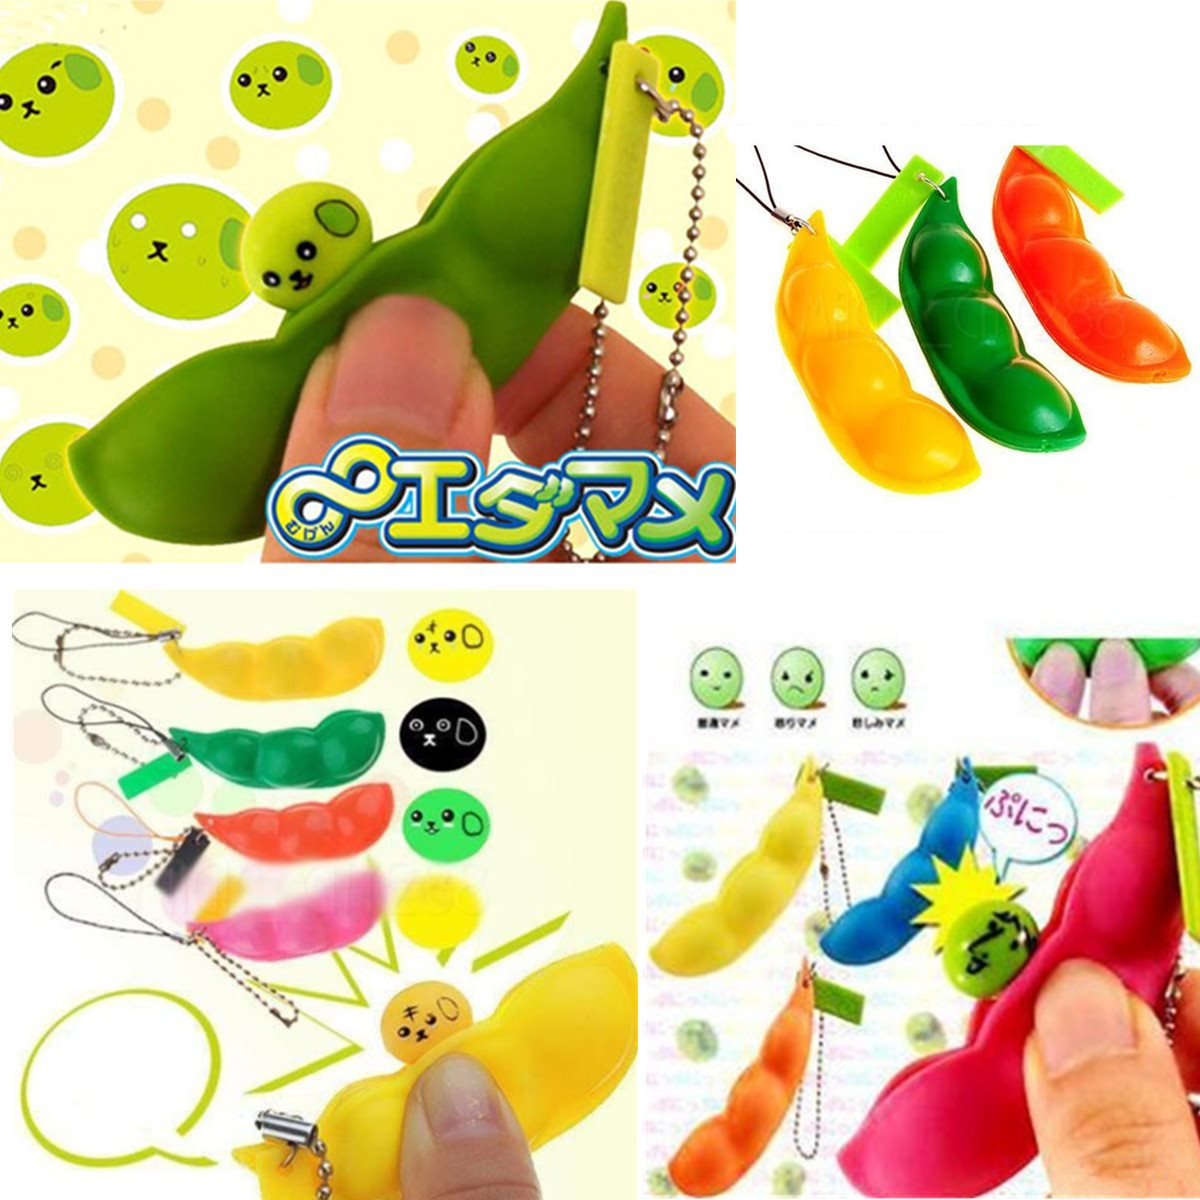 Hot Sale 2pcs Cute Novelty Puchl Soybean bean Stress Relieve Squeeze Toys Kids Gifts Pendants Toys(China (Mainland))